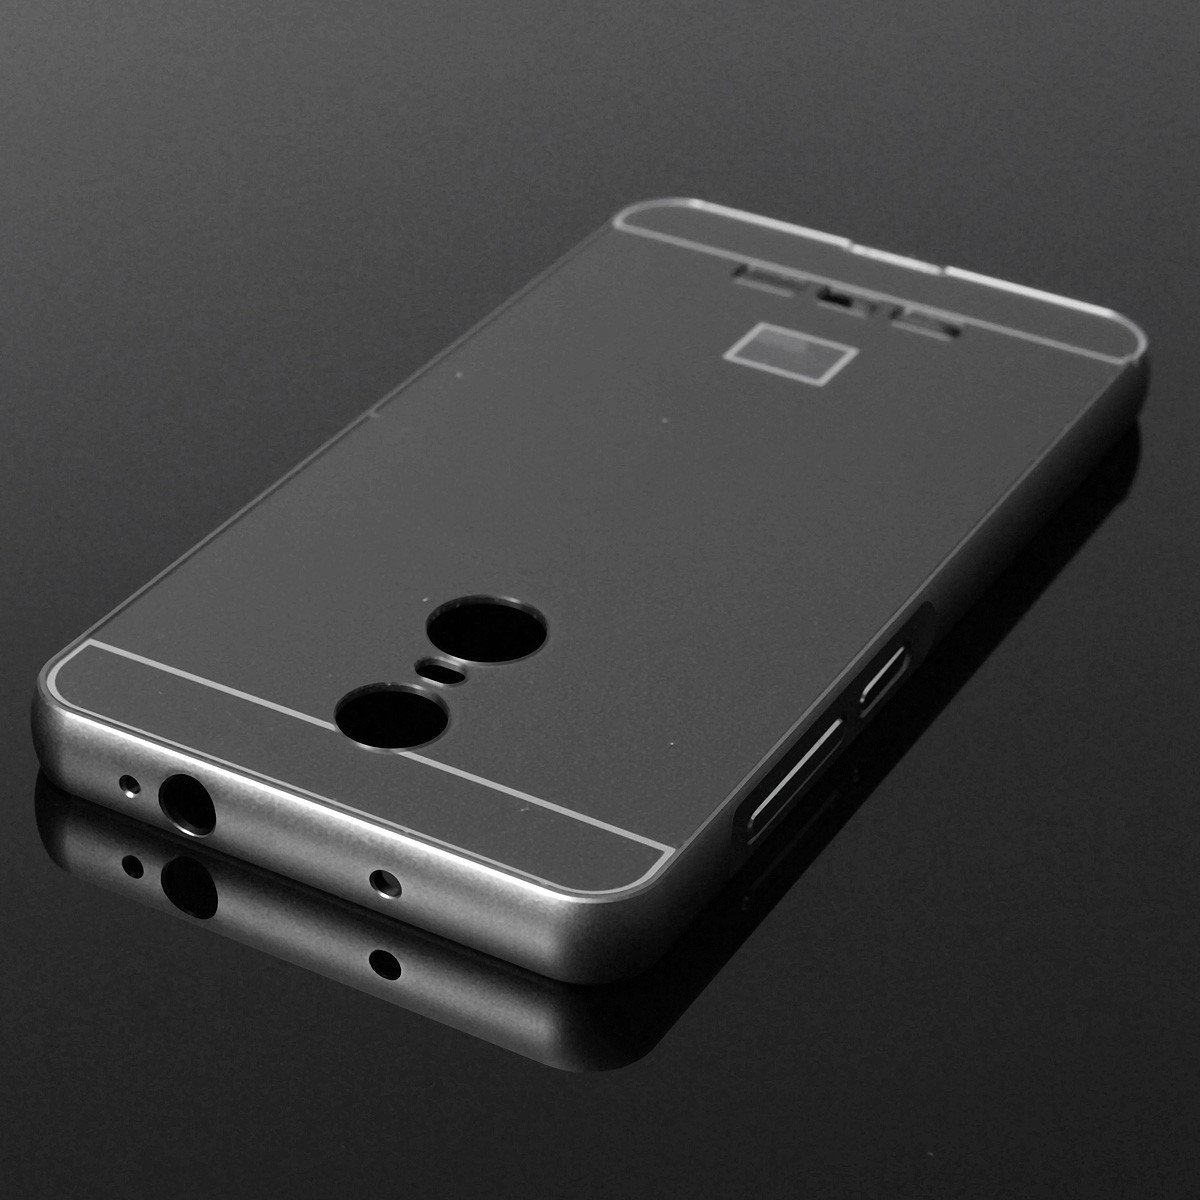 Xiaomi Redmi Note 3 Collection On Ebay Temperred Glass Softcase Ultra Thin Metal Frame Acrylic Pc Hard Back Cover Case For